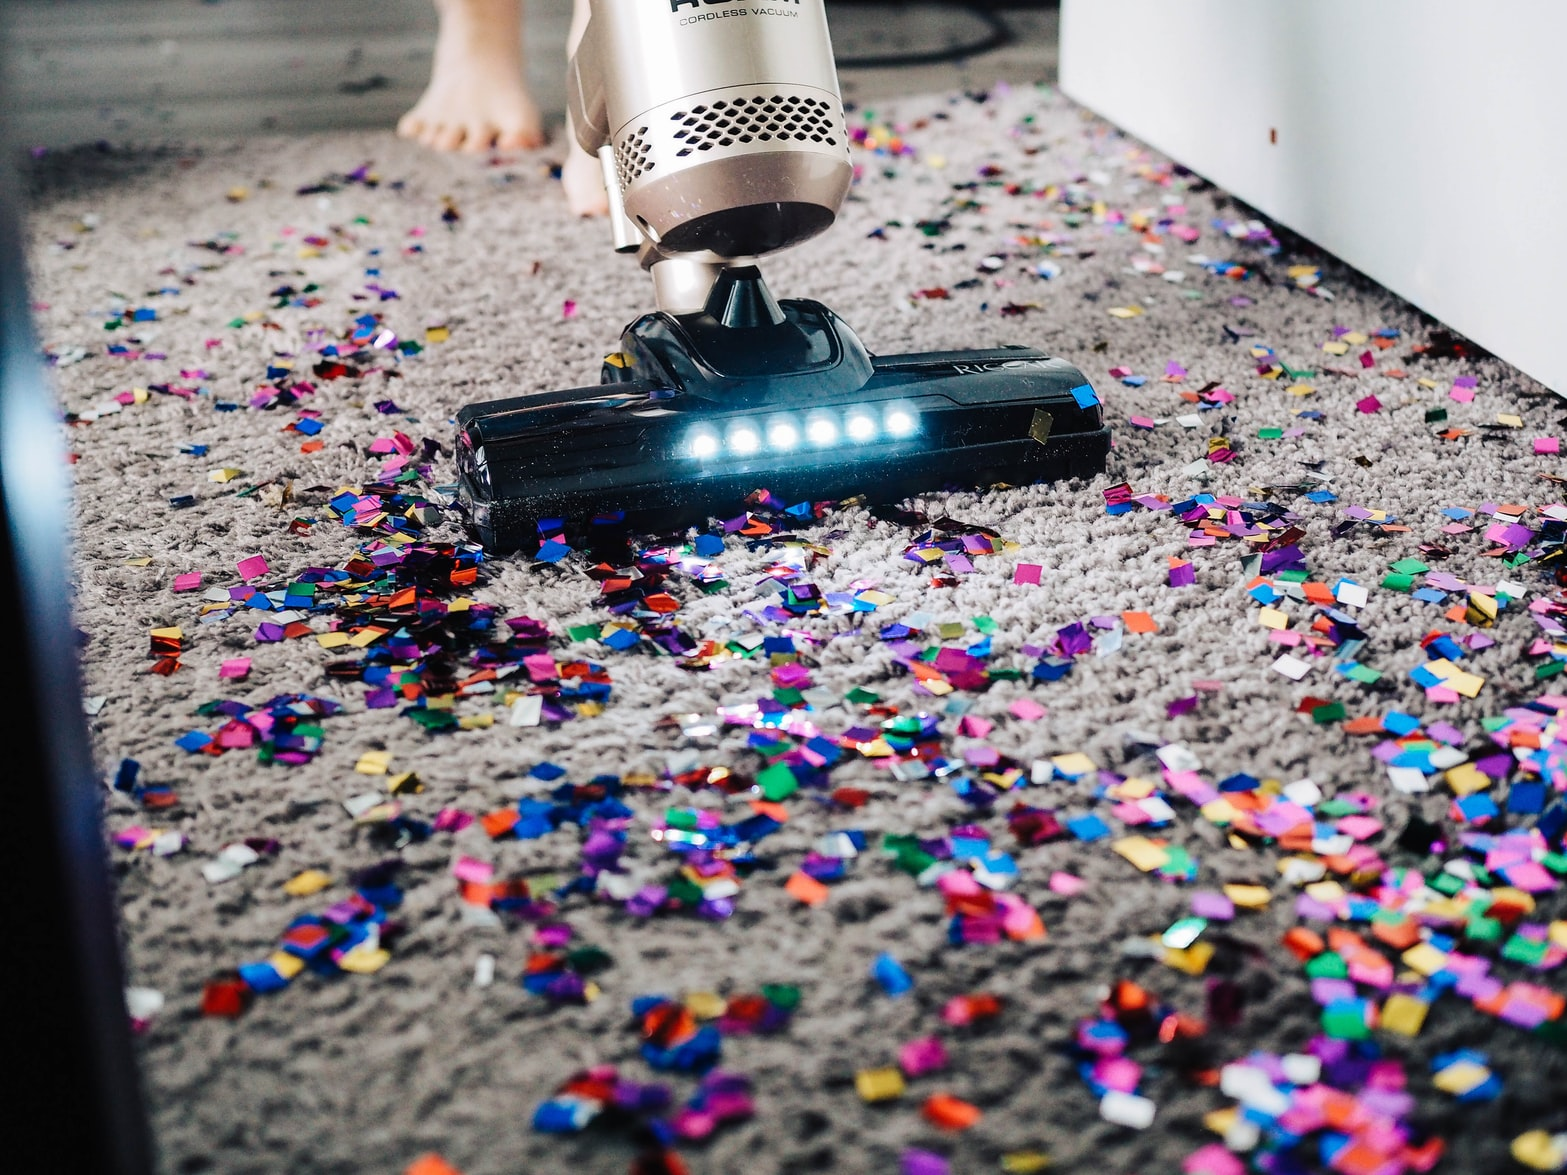 Handheld vacuum cleaning the carpet with full of confetti